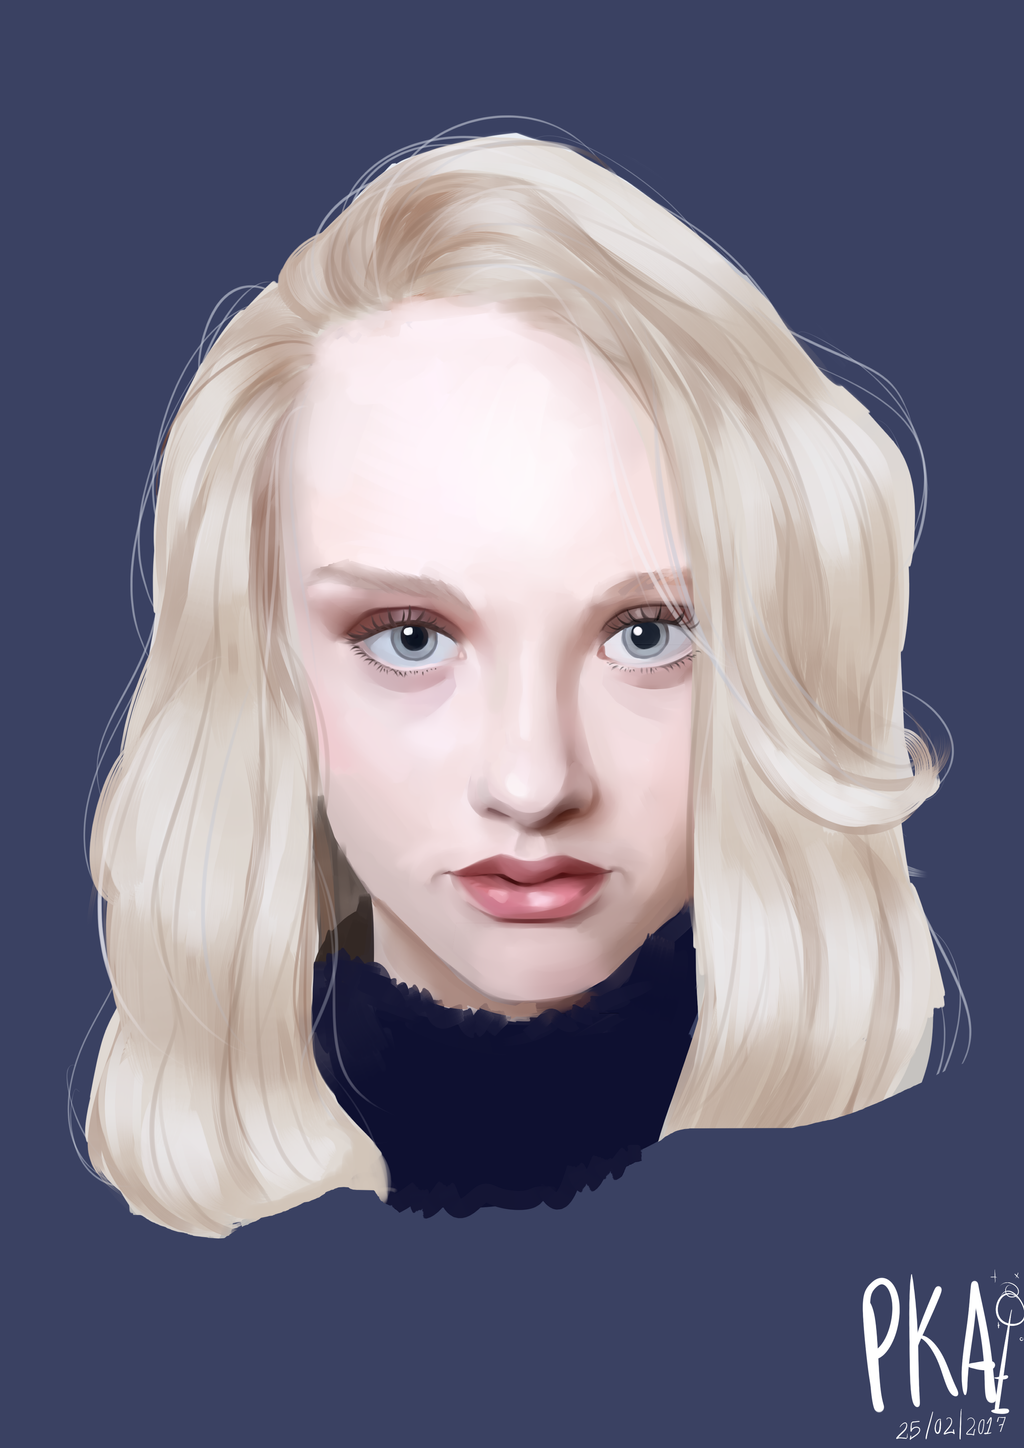 Luna Lovegood by Pekgna on DeviantArt